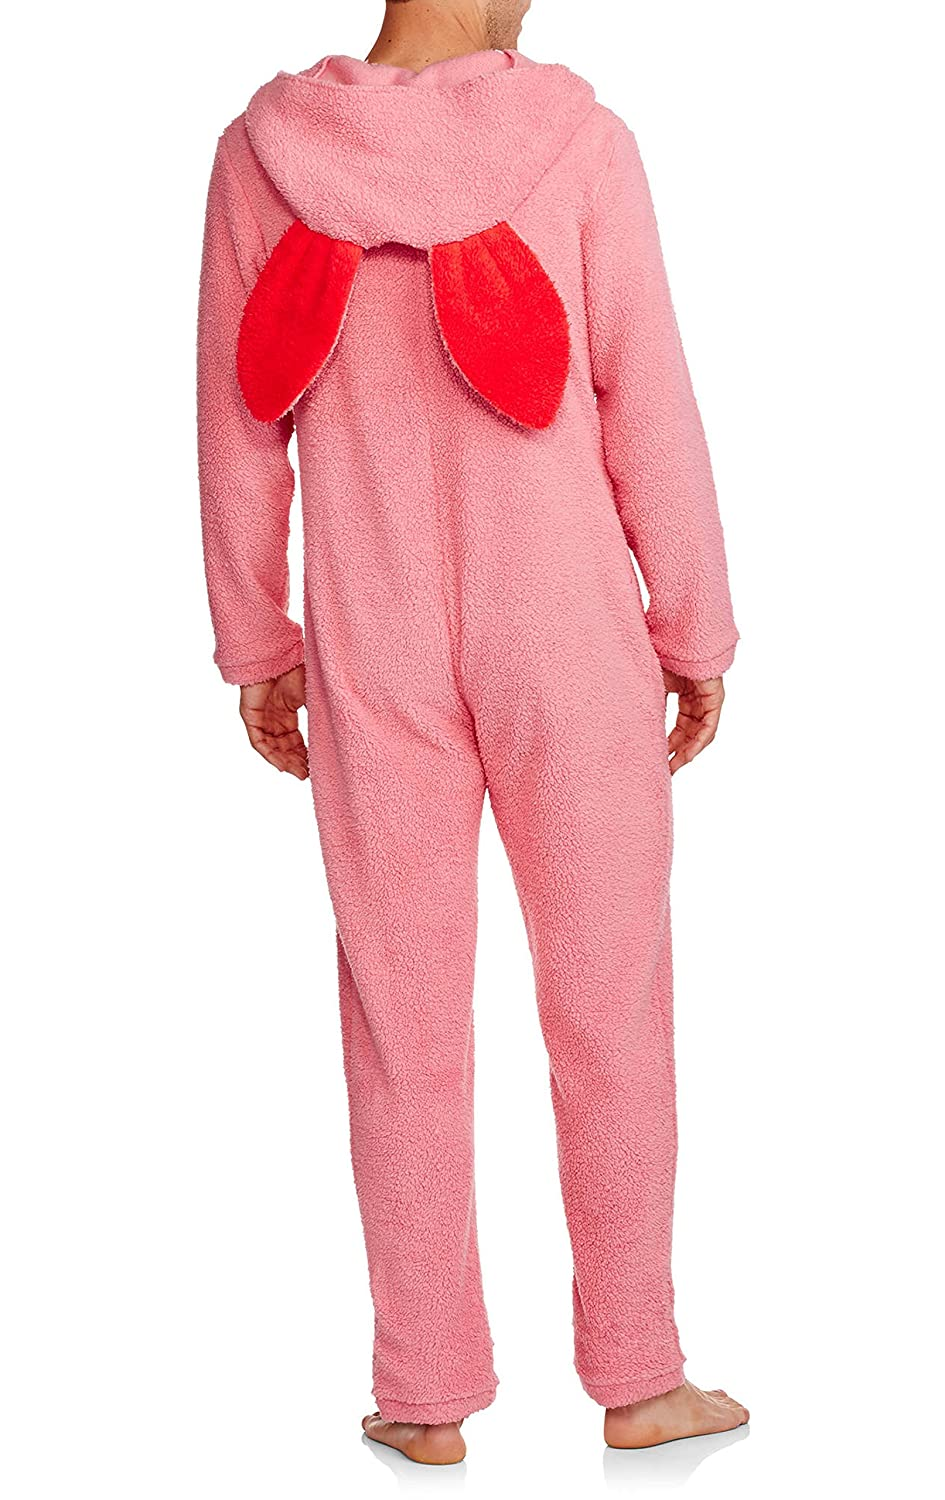 a christmas story mens pink bunny union suit pajama clothing jpg 945x1500 christmas story rabbit pjs